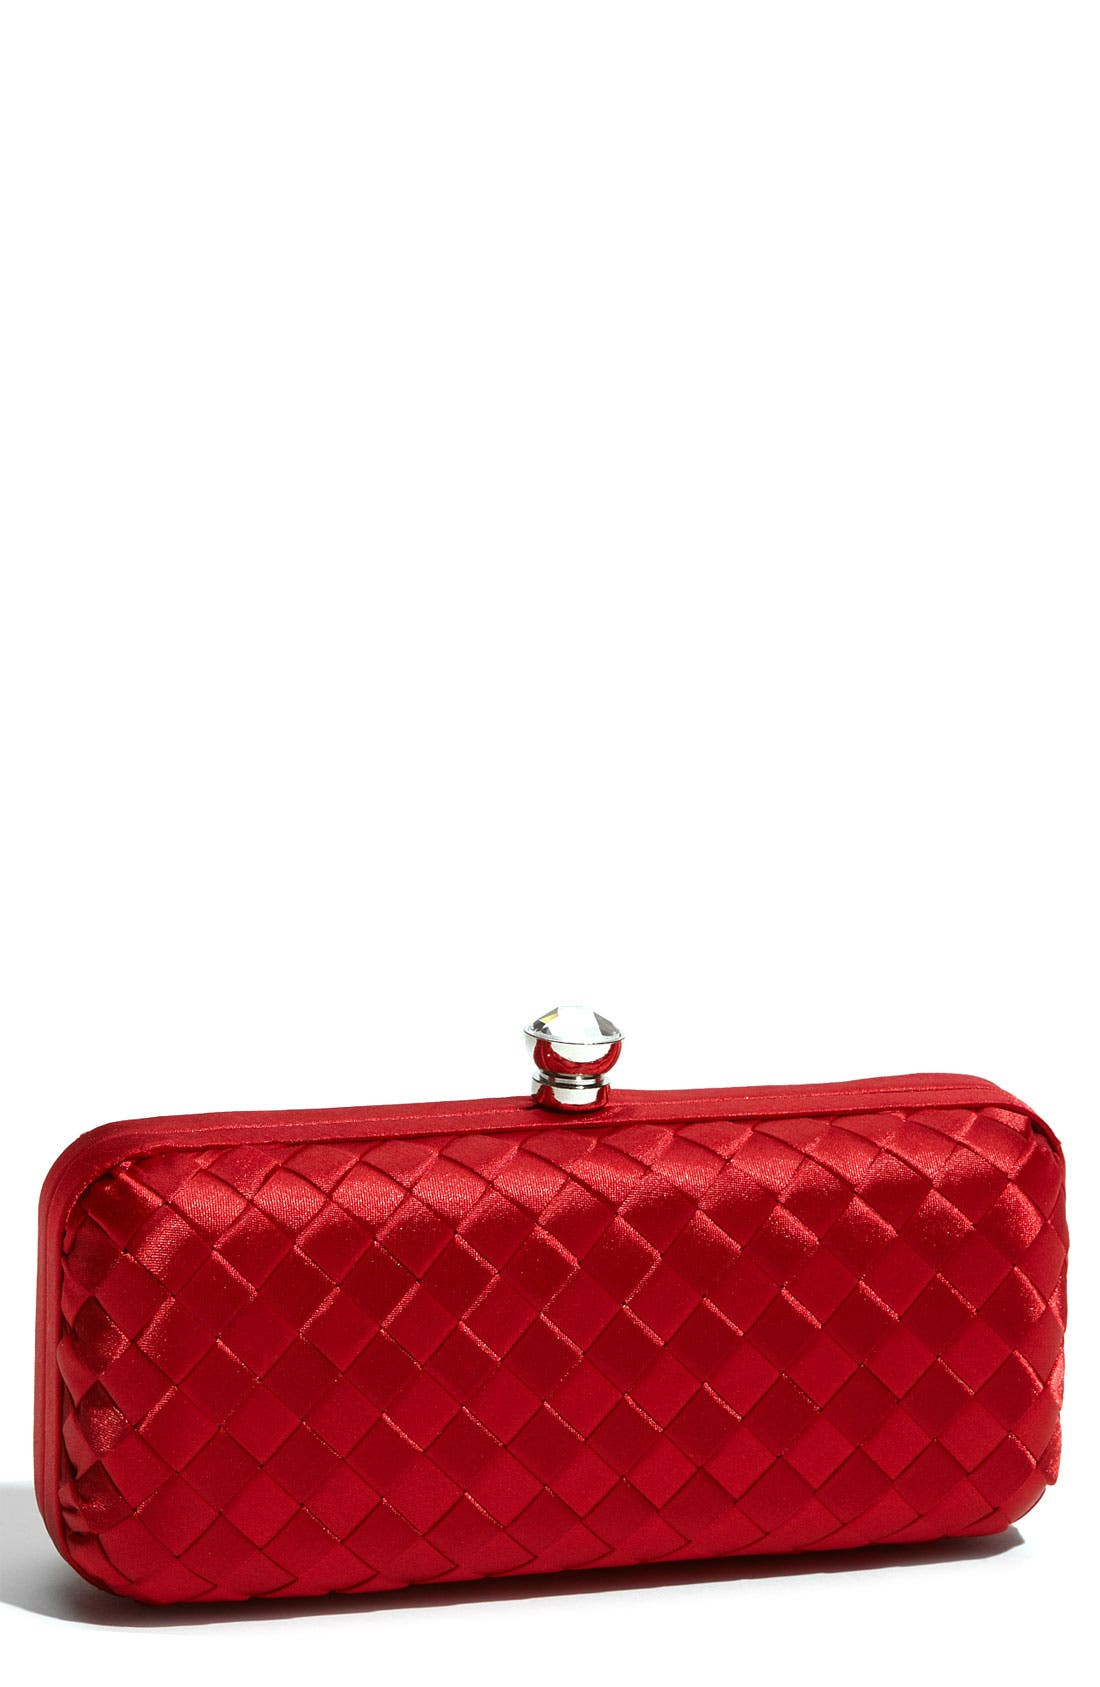 Alternate Image 1 Selected - Expressions NYC Woven Satin Minaudiere Clutch